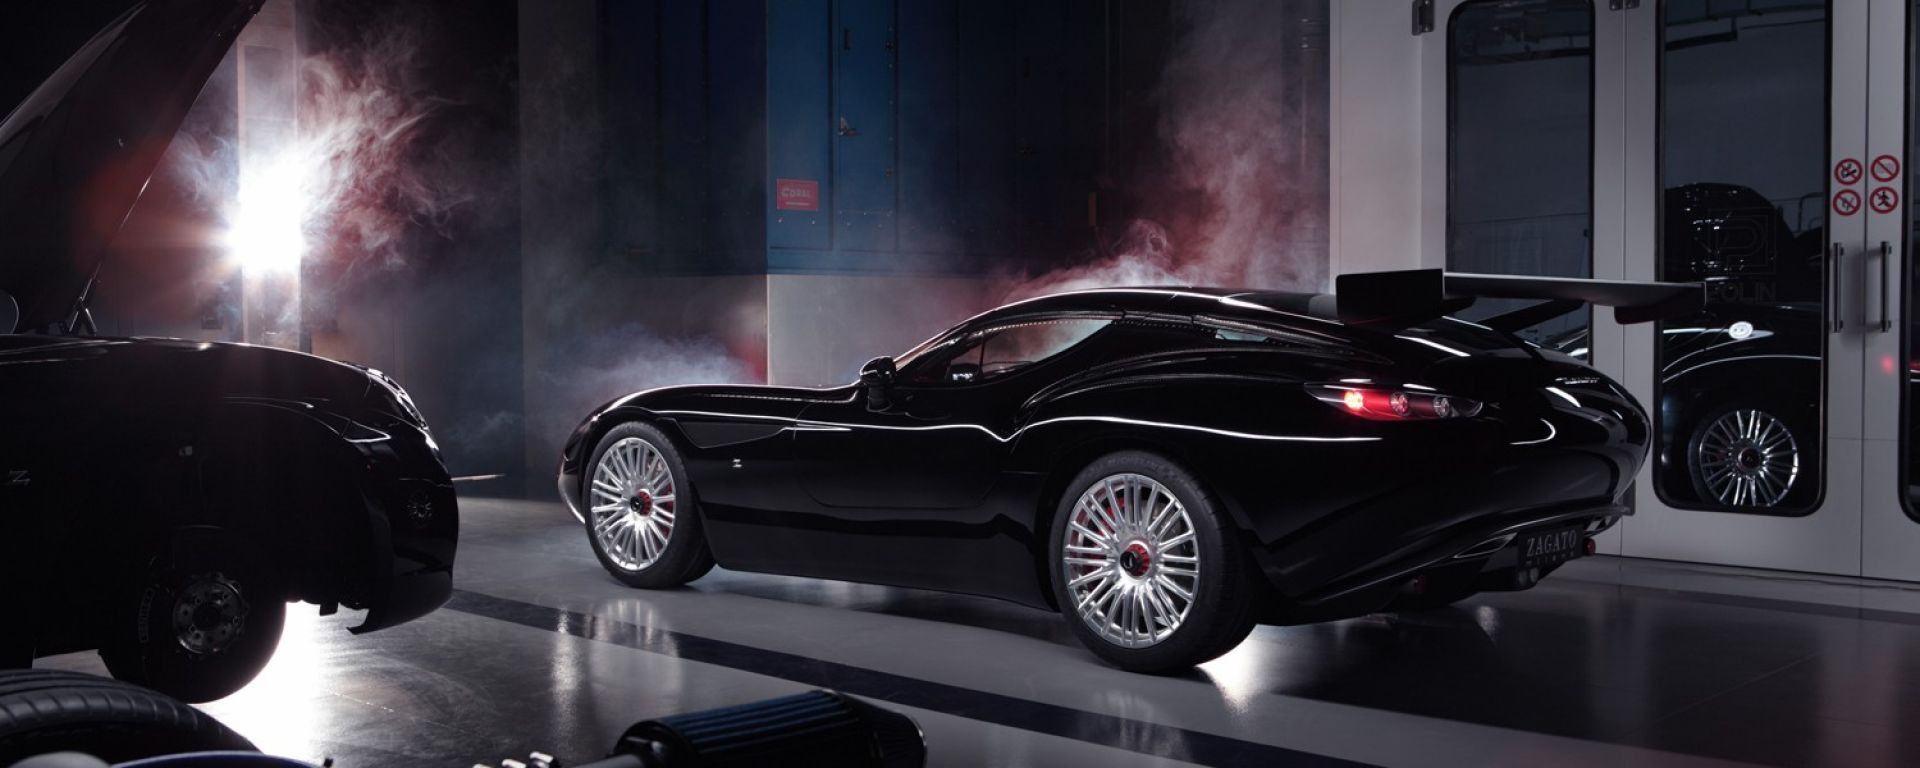 Zagato Mostro powered by Maserati